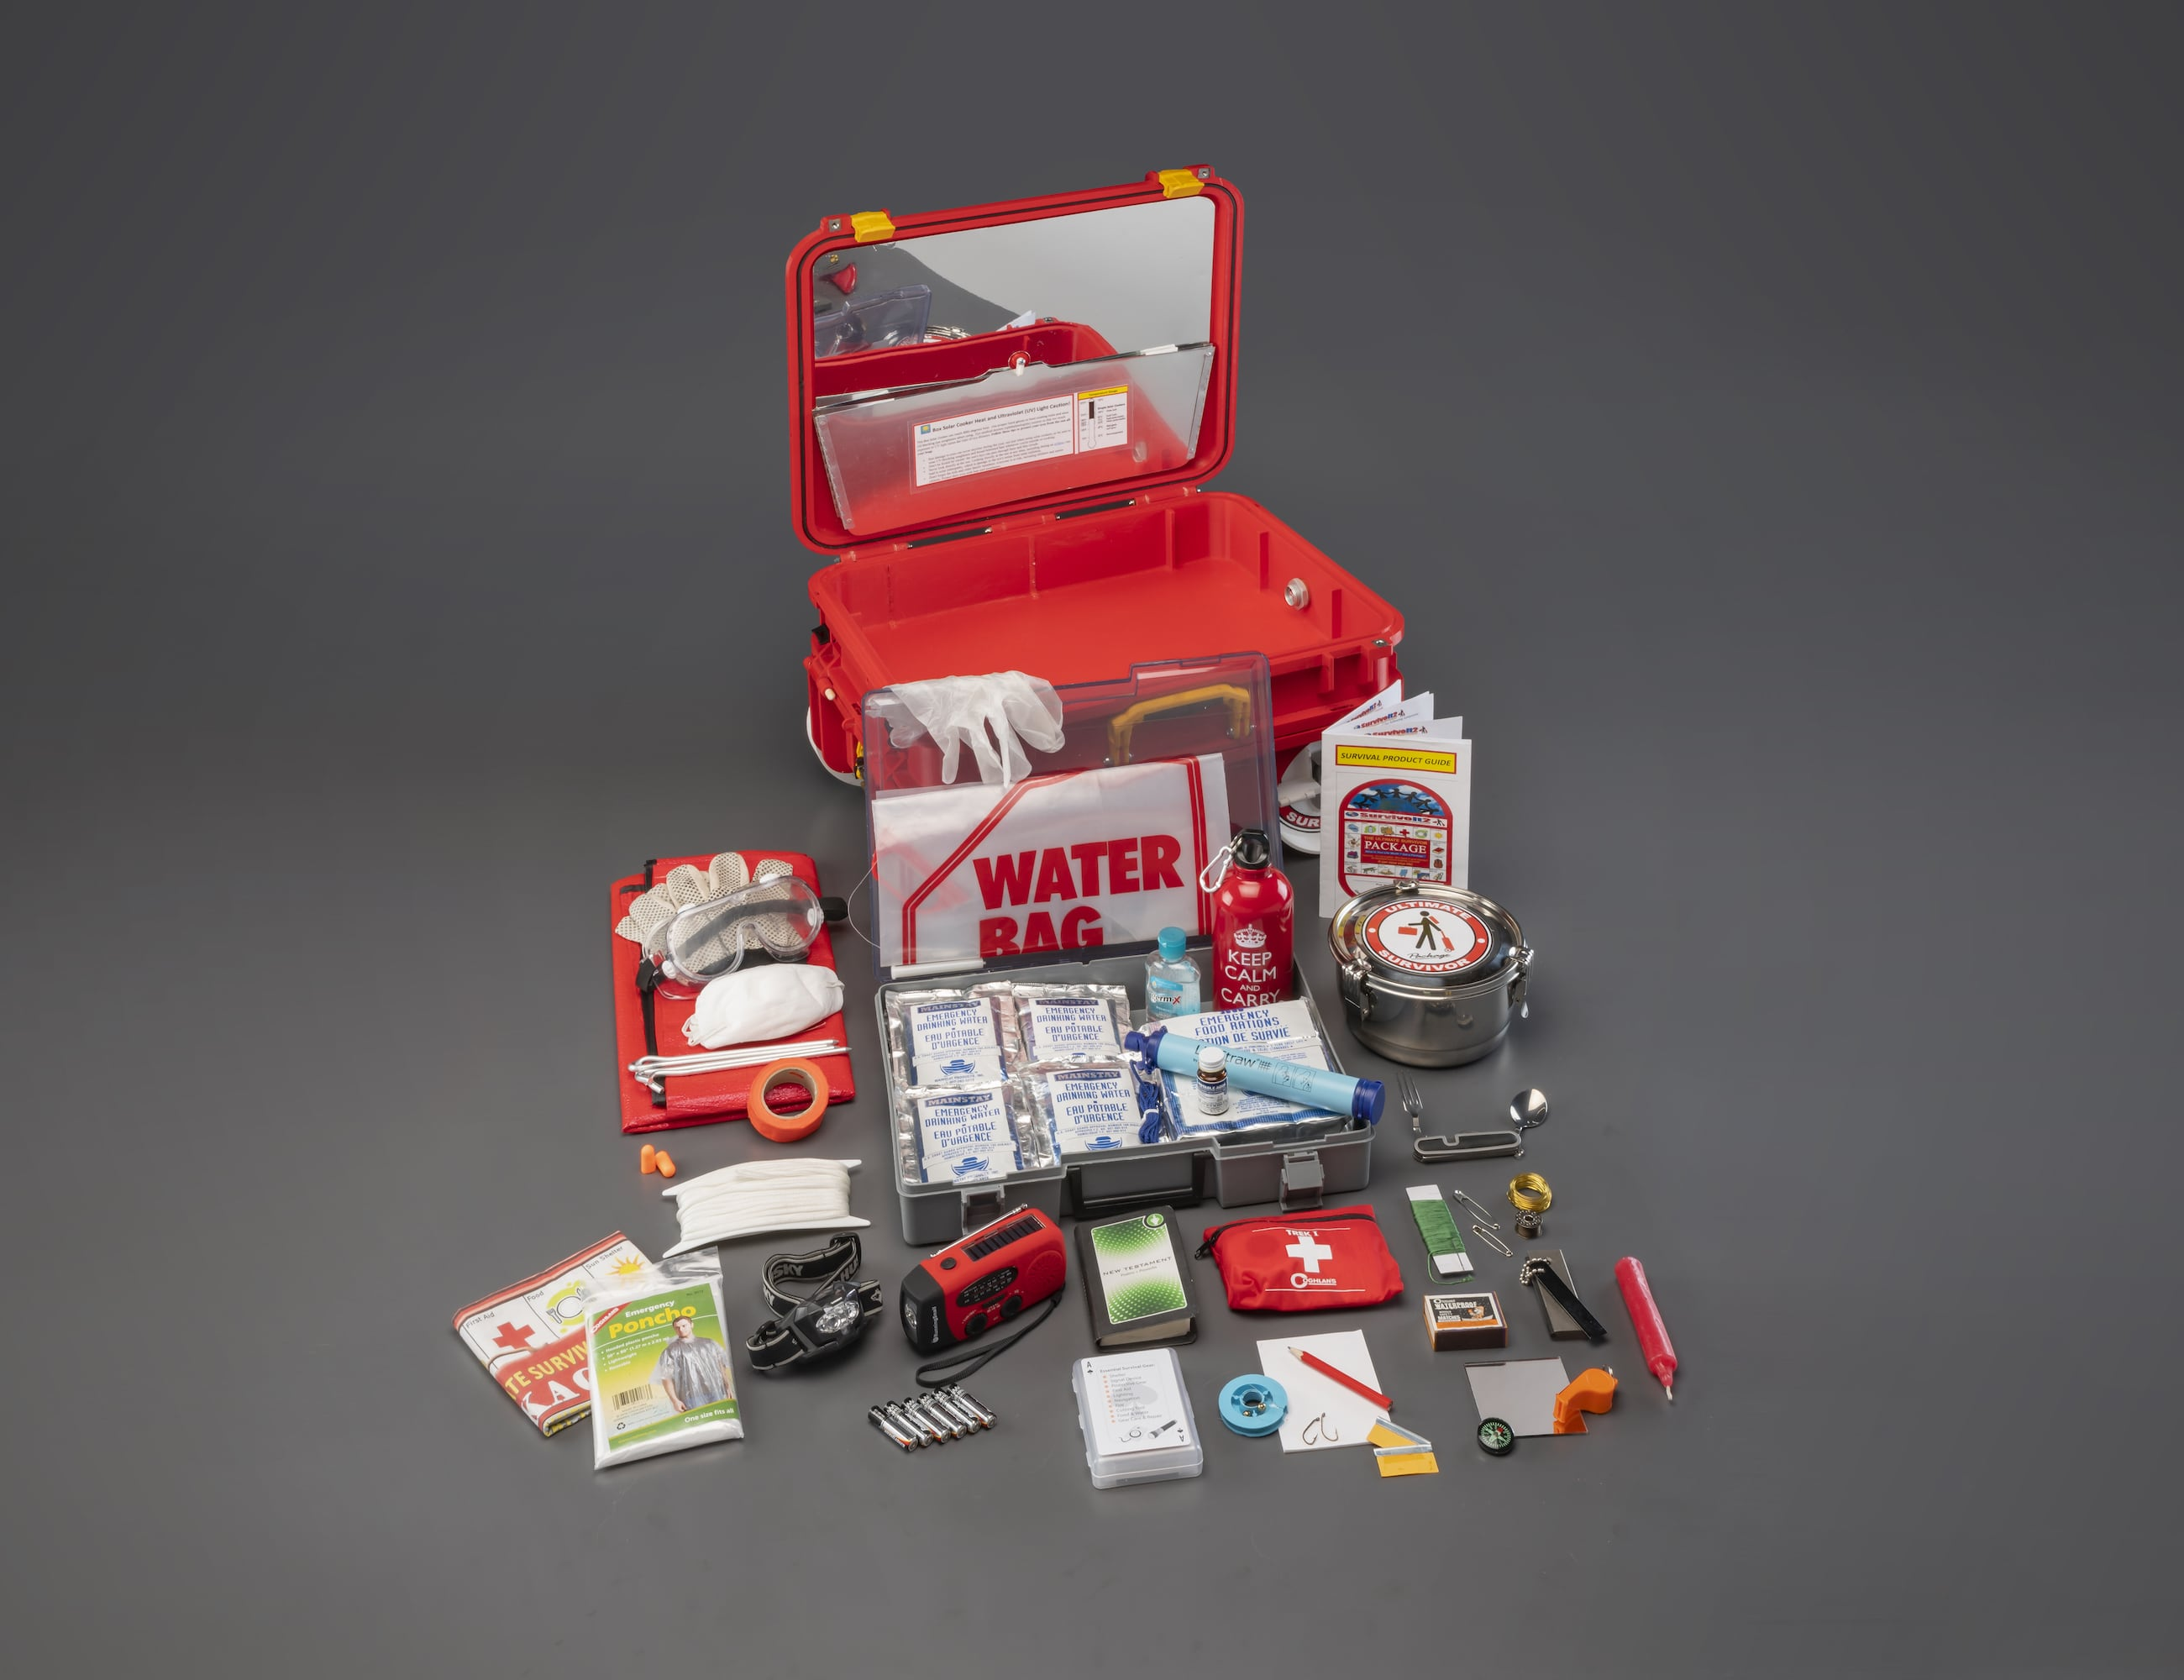 Ultimate Survivor Package – Survival, Camping, & Outdoor Gear